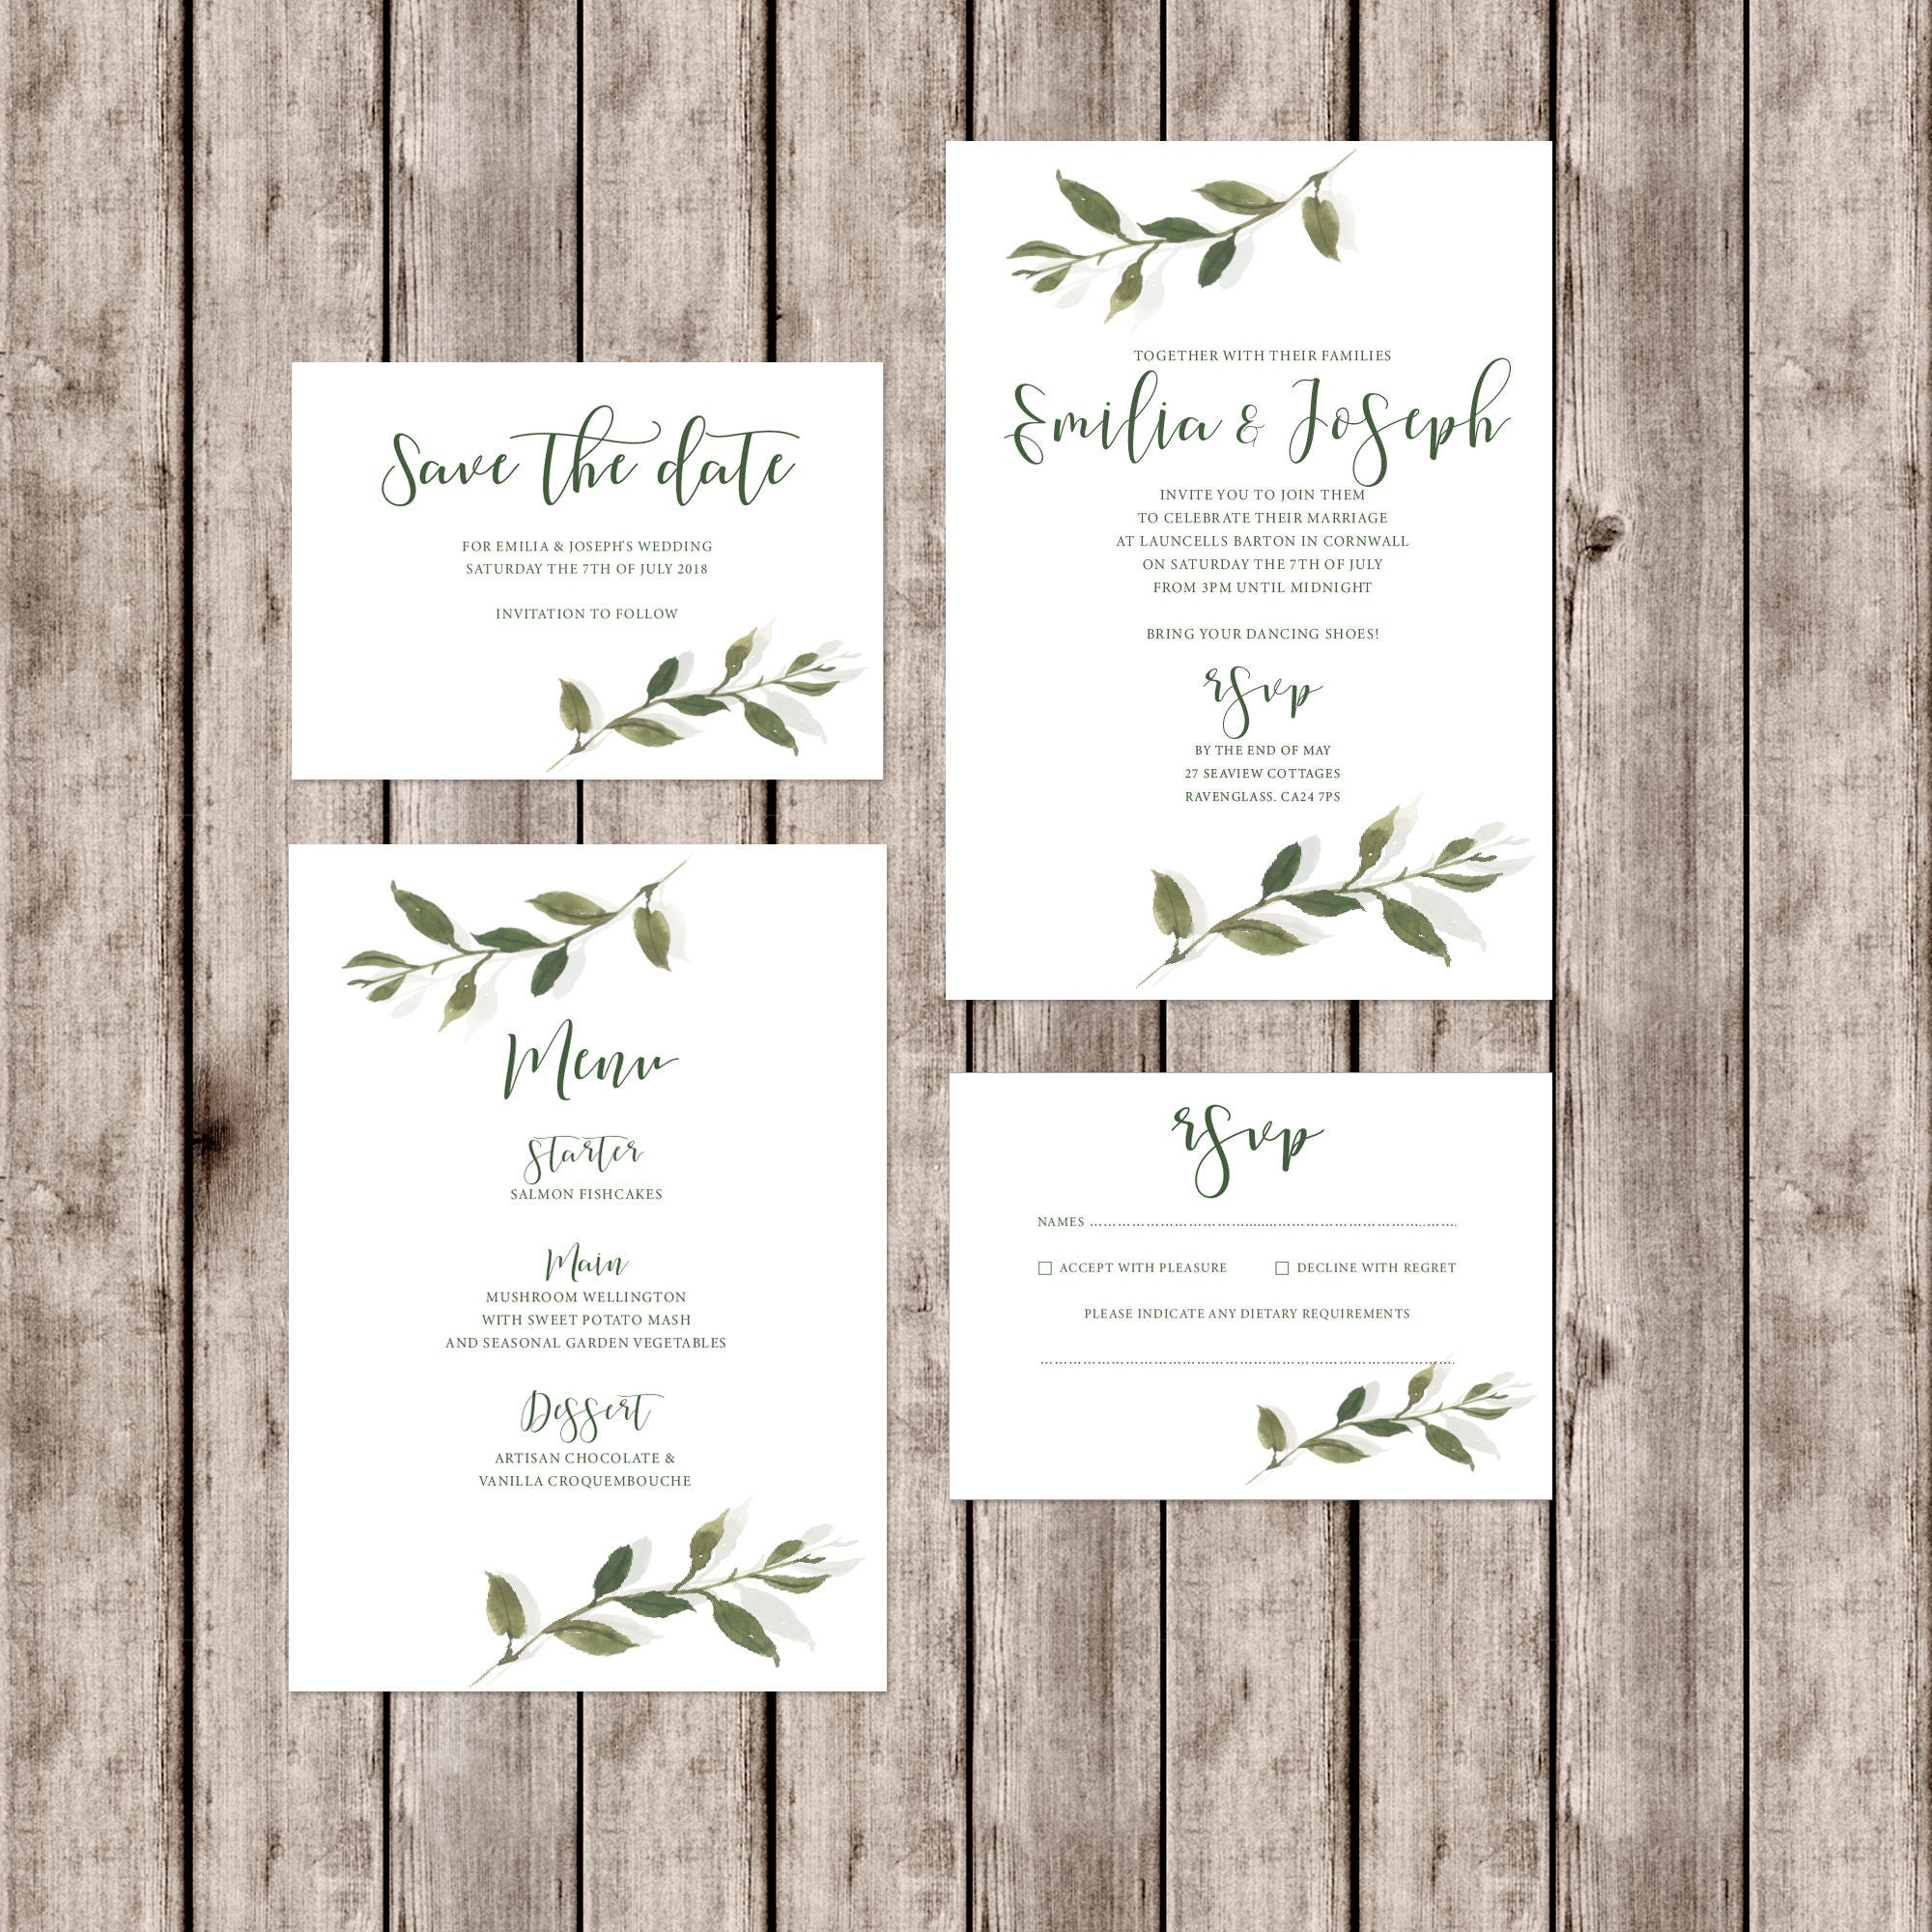 Sophisticated somerset wedding invitations with leaf detail and sophisticated somerset wedding invitations with leaf detail and matching accessories monicamarmolfo Gallery